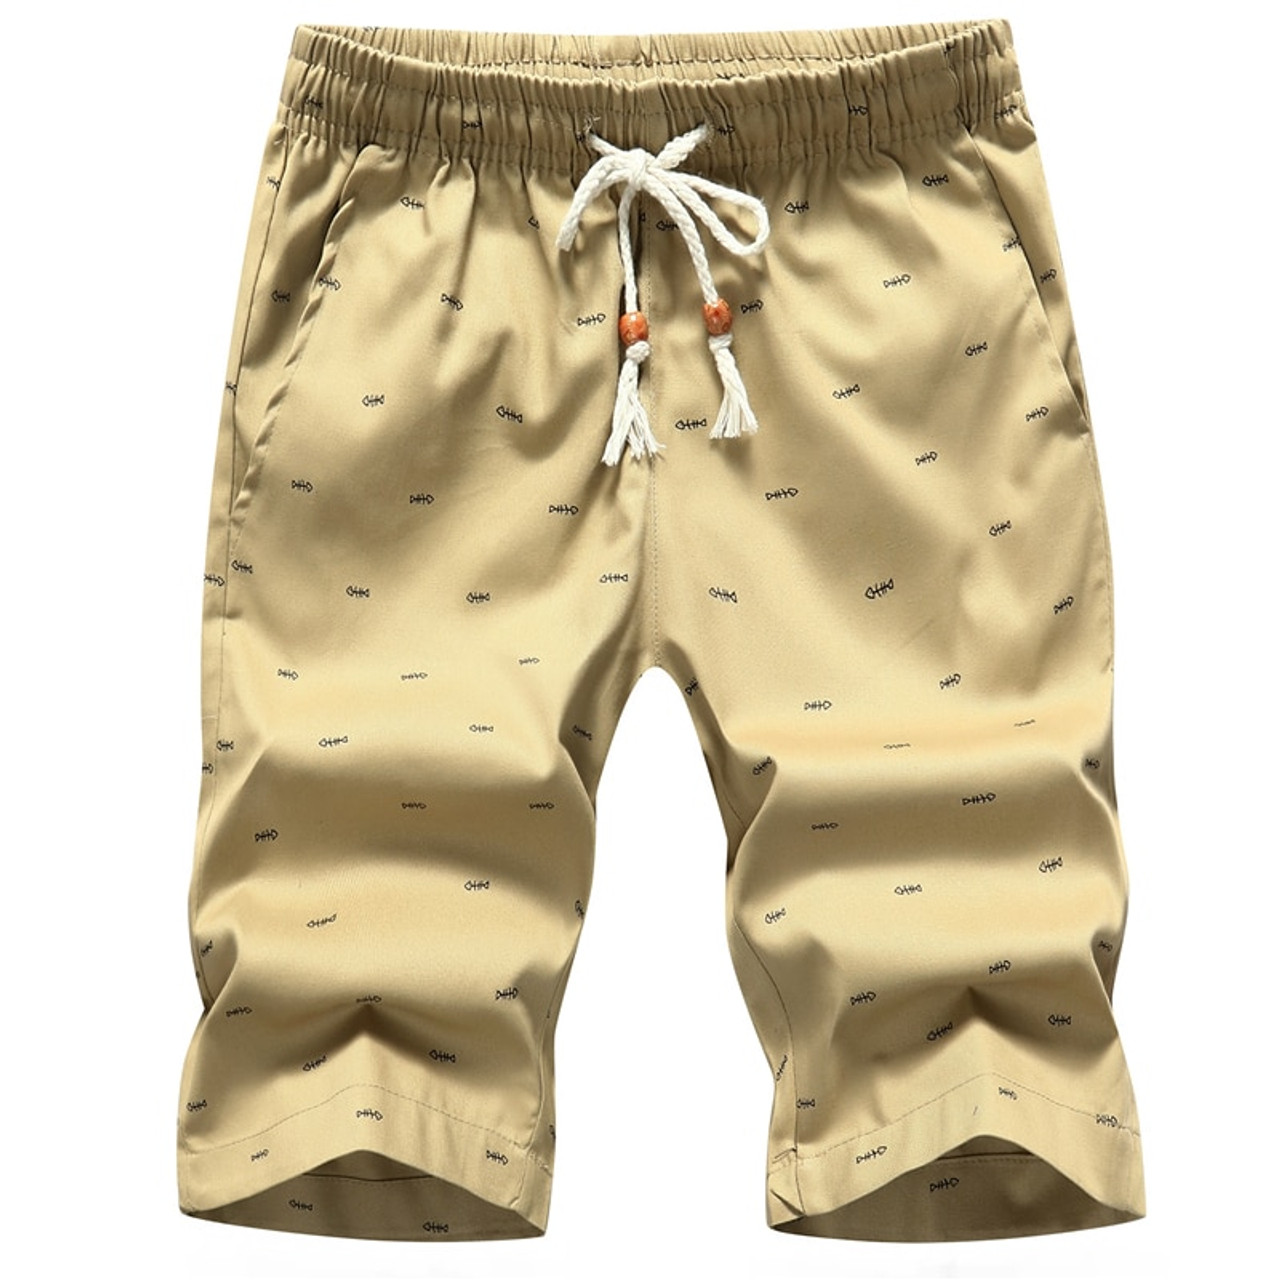 PantsMens Summer Plus Size Thin Fast-Drying Beach Trousers Casual Sports Short Fashion New Mens Shorts